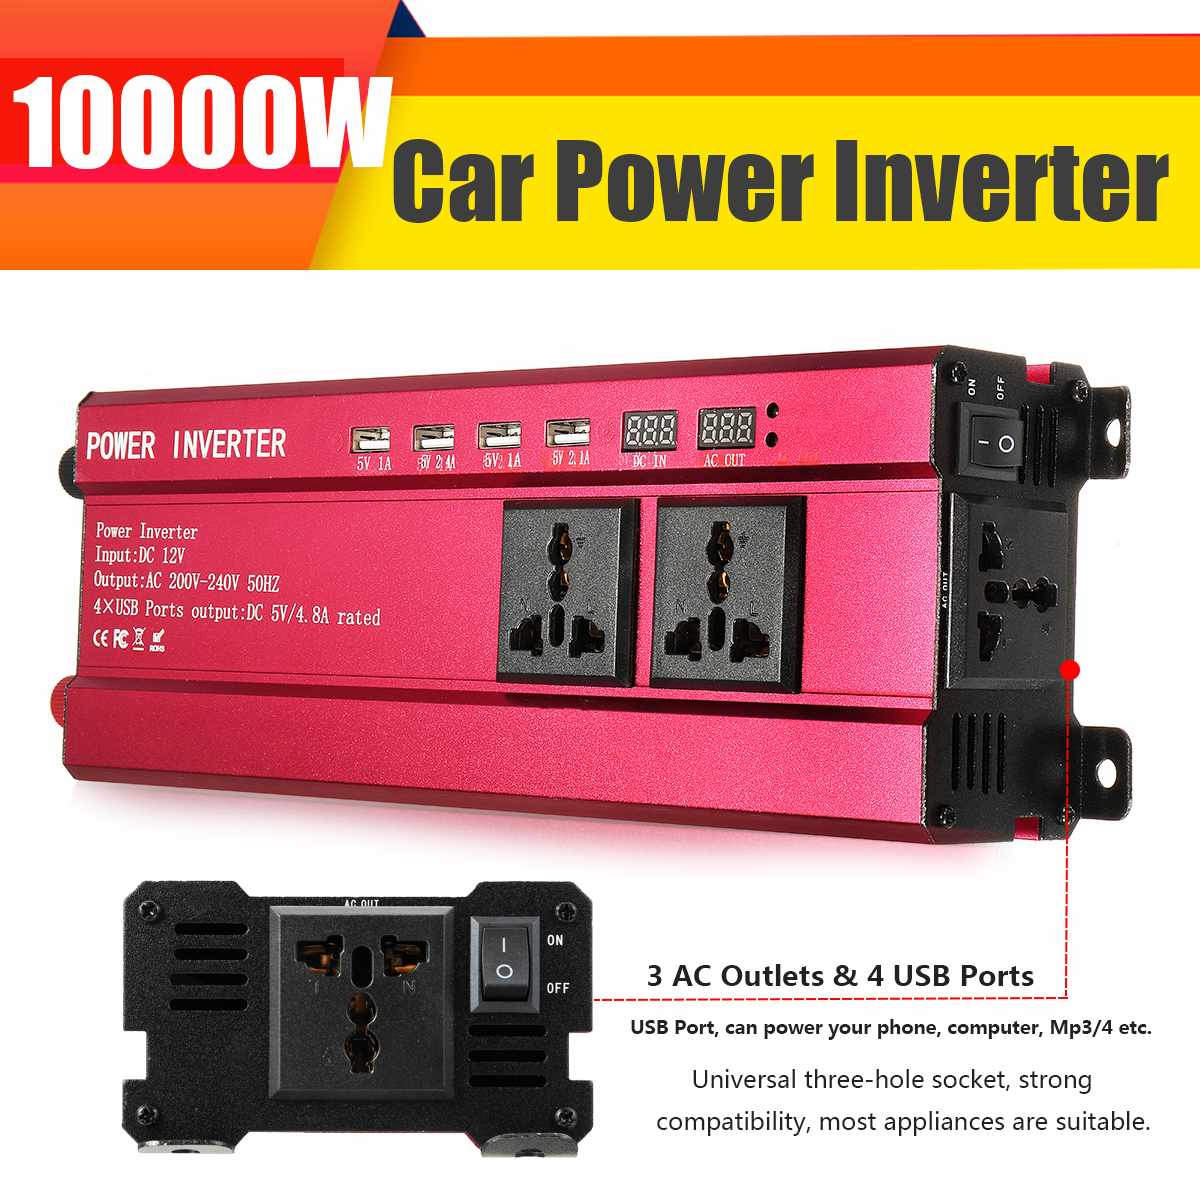 Inverter DC 12V AC 200-240V 10000W Peak- Modified Sine Wave Power Voltage Transformer USB Car Solar Power Inverter + LCD Display